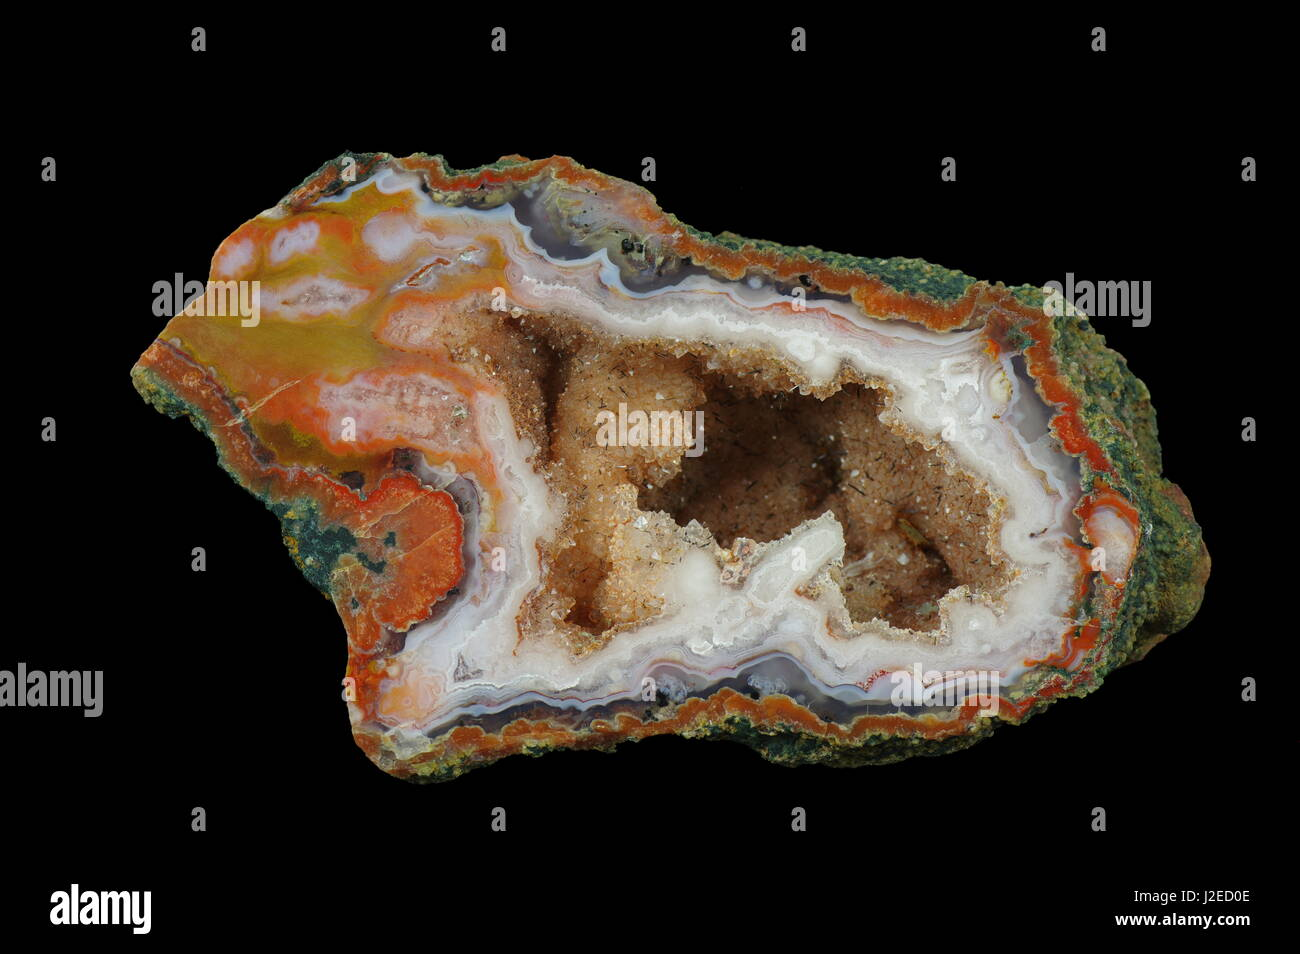 A cross section of the agate stone. Inside geode is a 'calcite brush' with goethite. Origin: Asni, Atlas - Stock Image